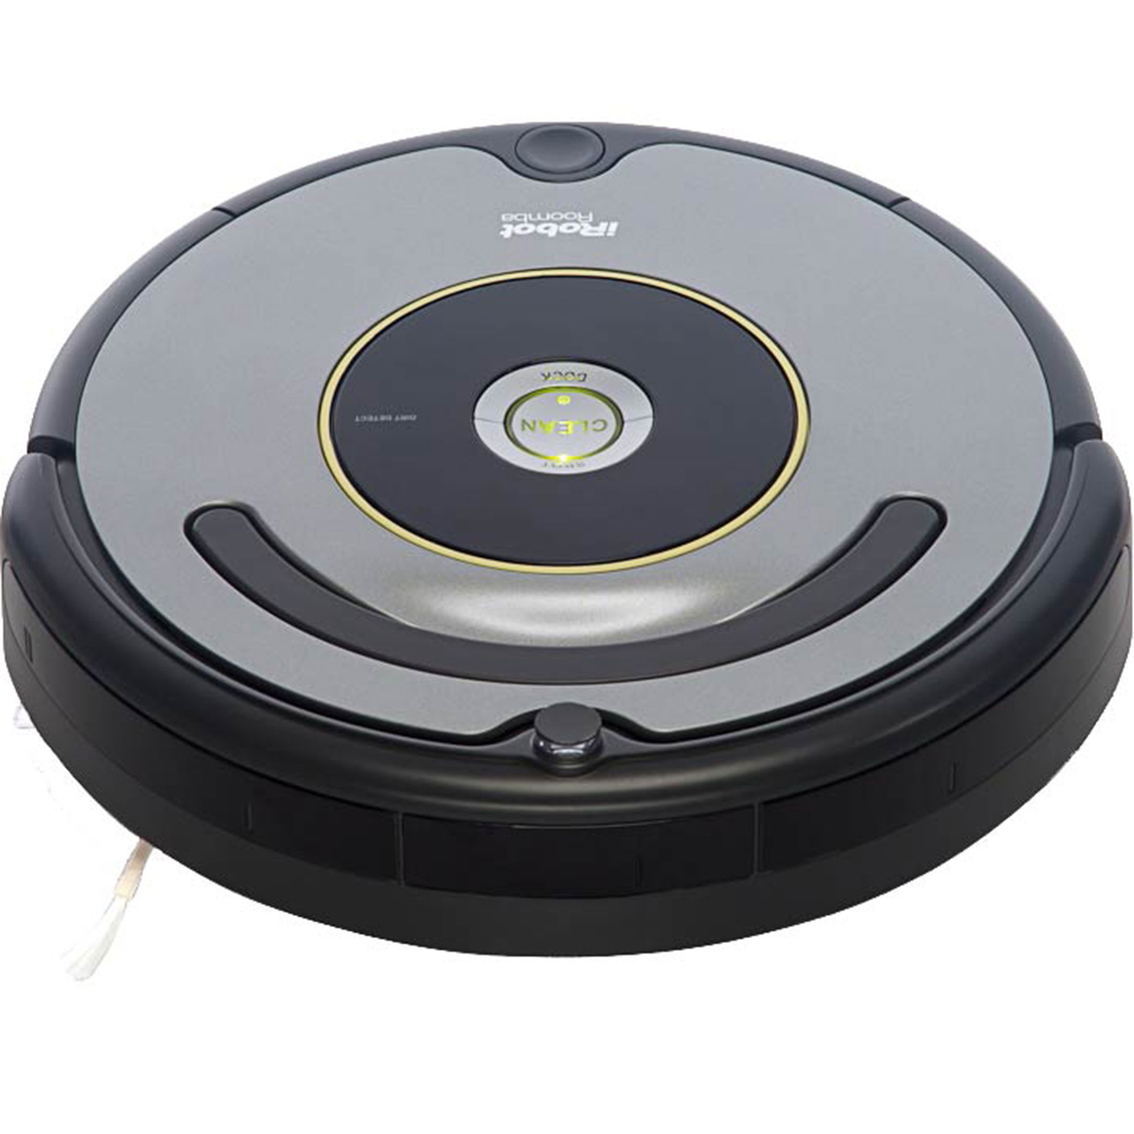 roomba vacuum cleaner irobot roomba 630 vacuum cleaning robot vacuums home 10367